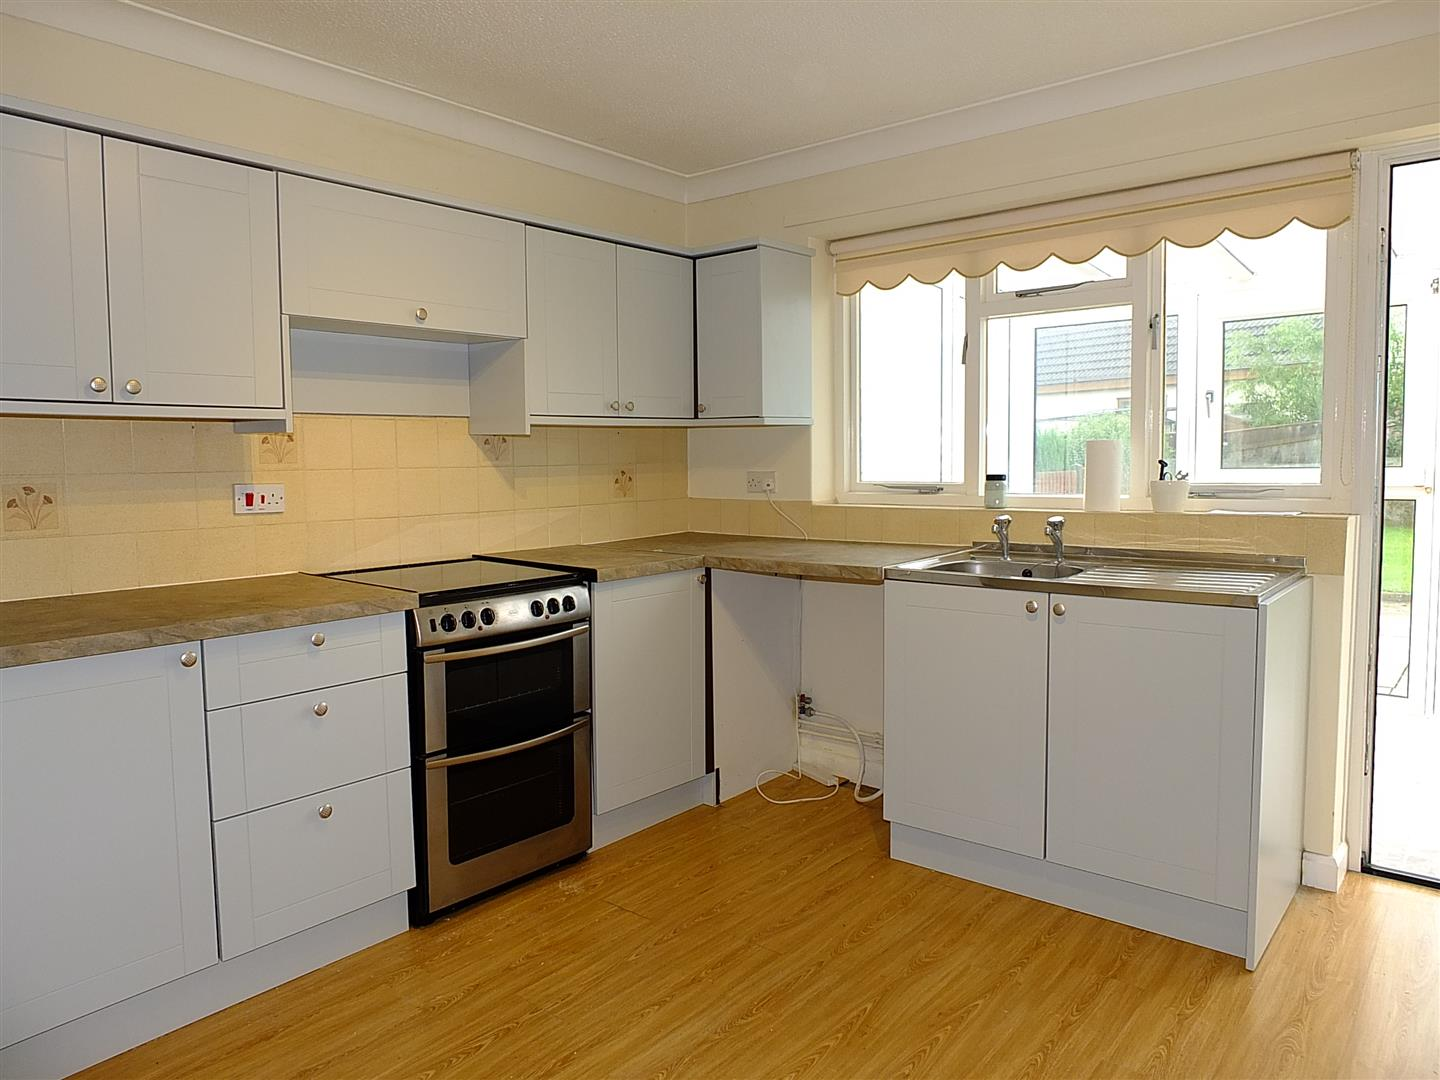 3 bed detached bungalow to rent in Long Sutton Spalding, PE12 9LY 5